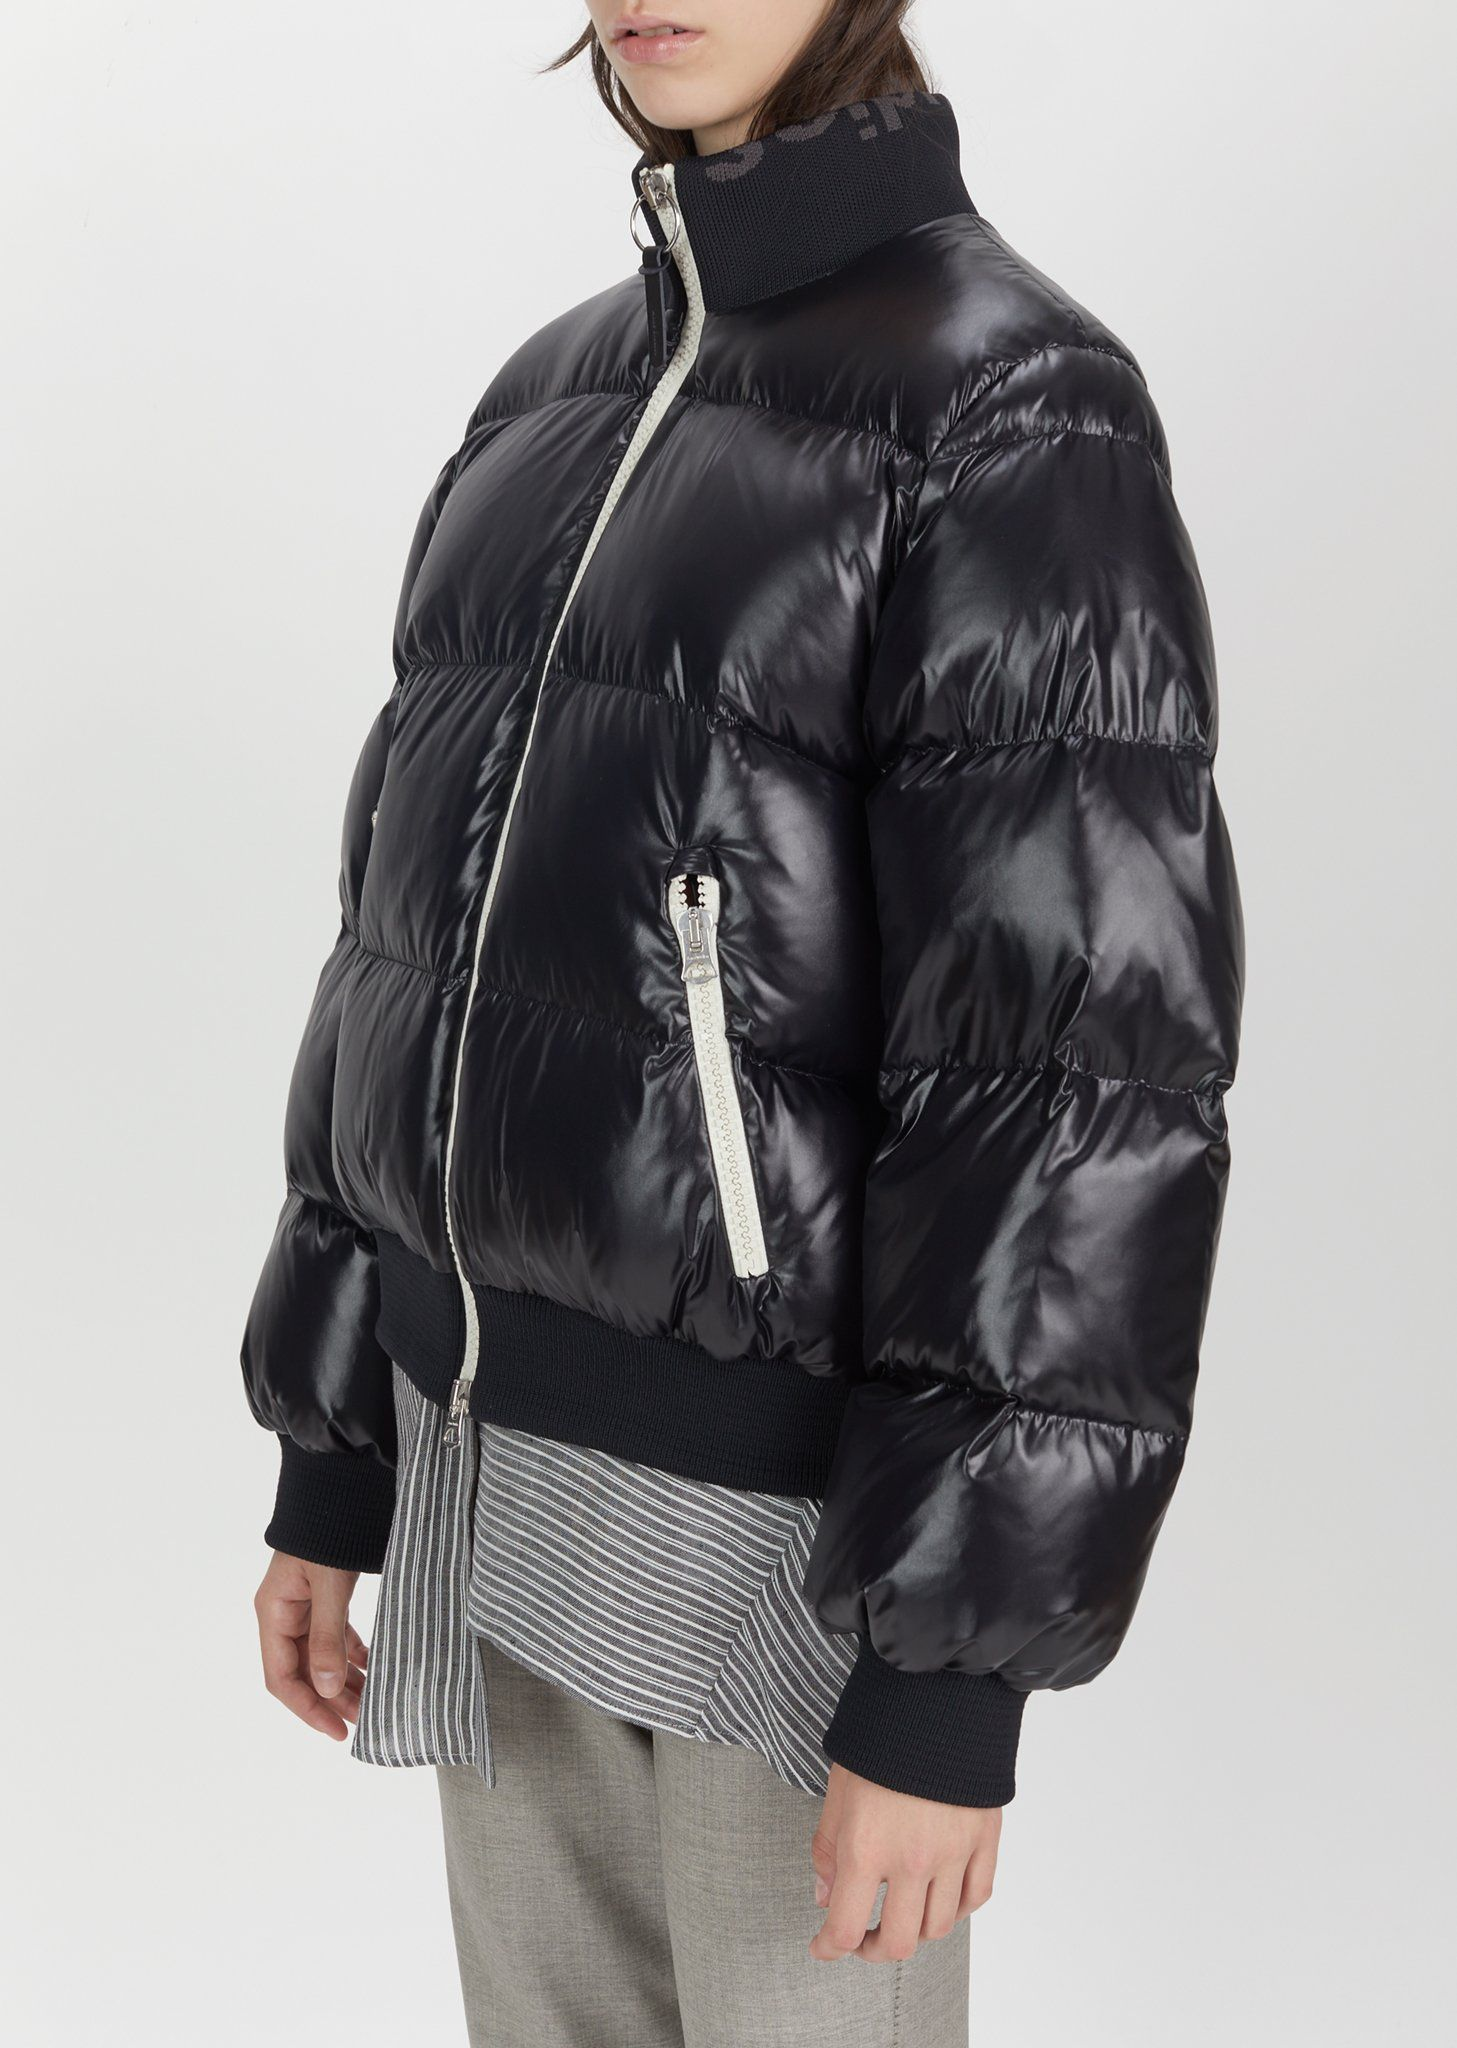 Cilla Puffer Bomber Jacket By Acne Studios La Garconne Jackets Short Puffer Jacket Quilted Bomber [ 2048 x 1457 Pixel ]